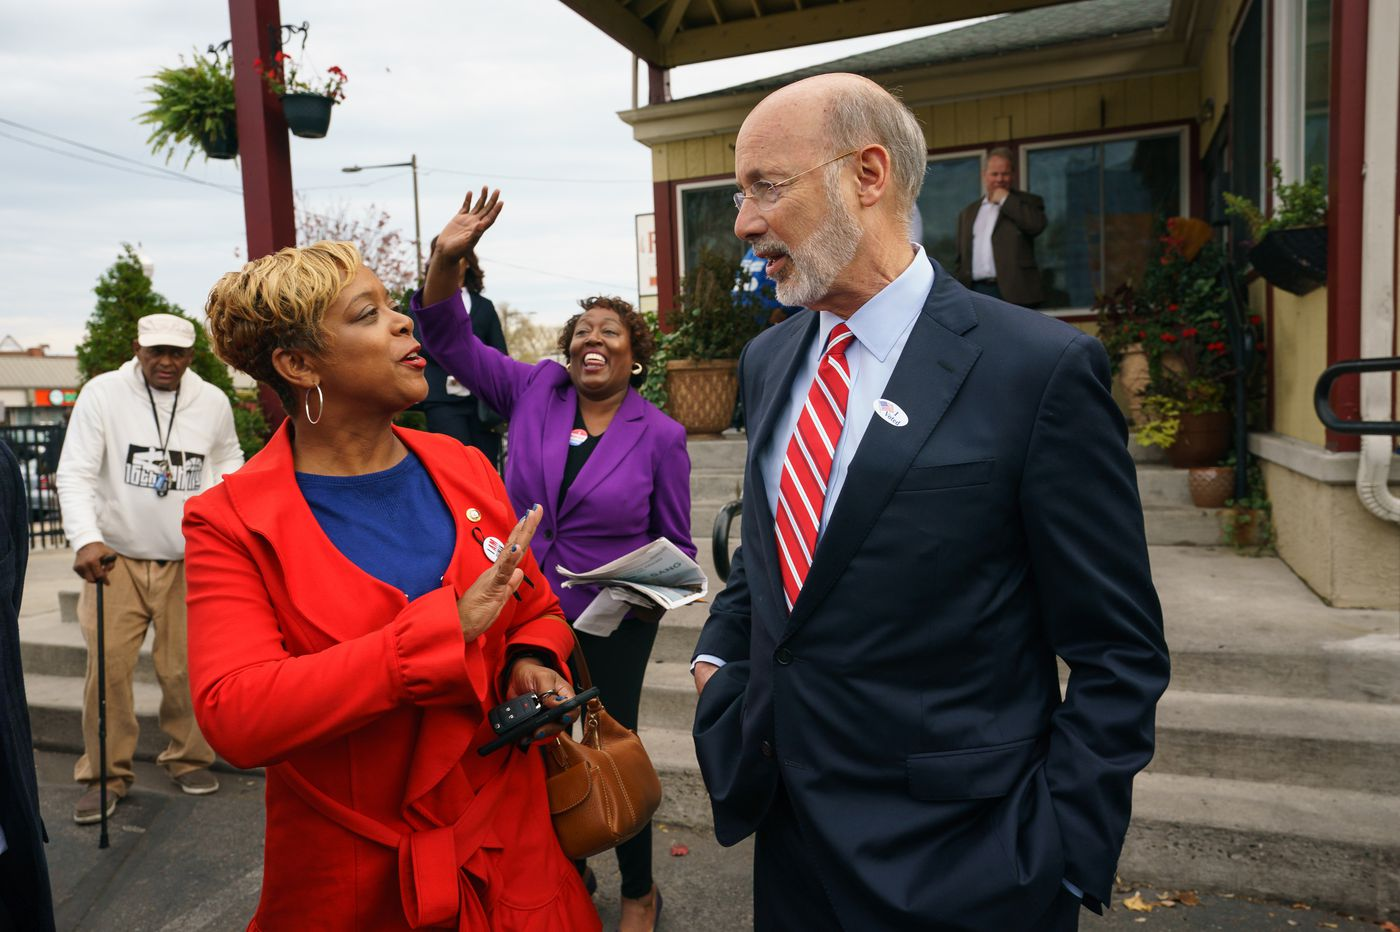 Did Pennsylvania Gov. Tom Wolf just endorse Josh Shapiro for governor in 2022? 'That's my guy.'